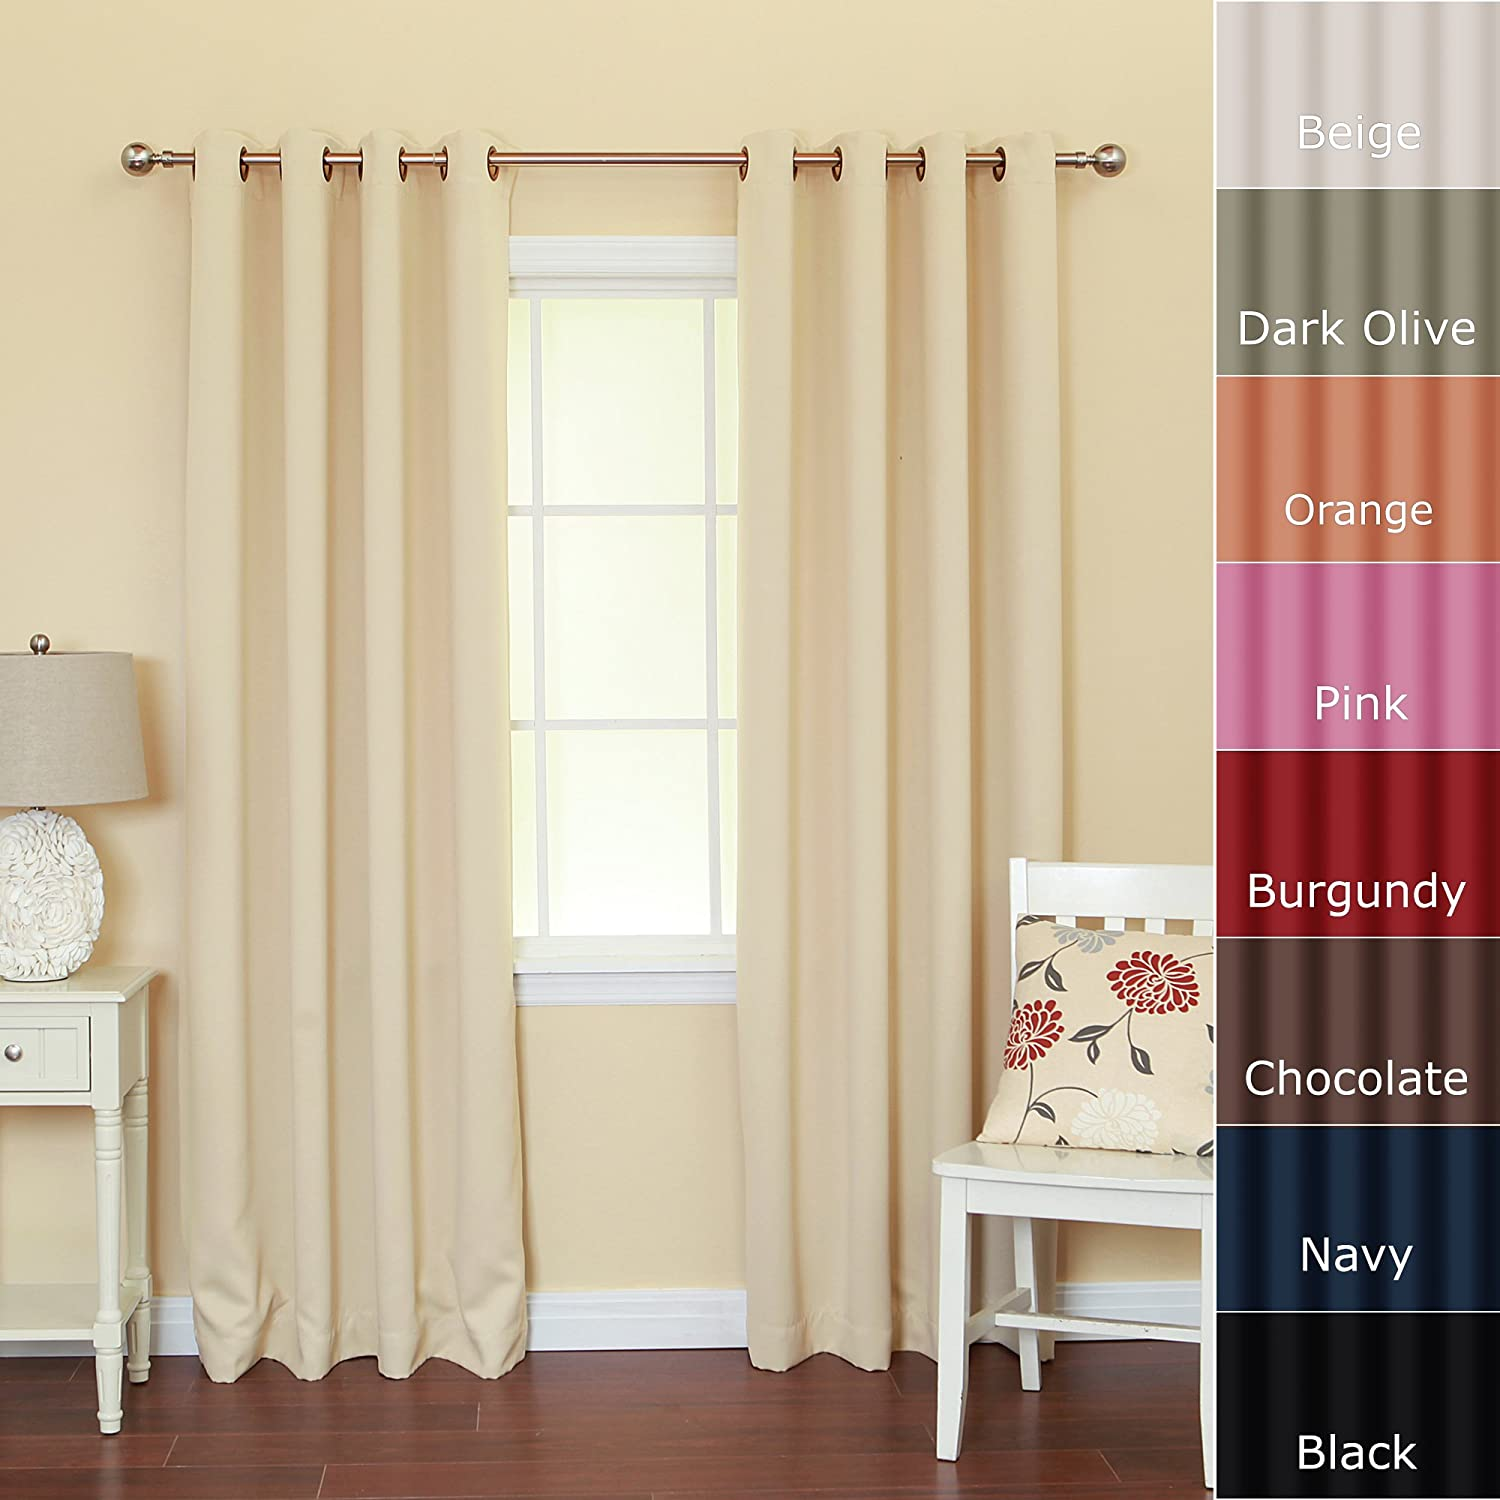 Amazon.com: Draperies & Curtains: Home & Kitchen